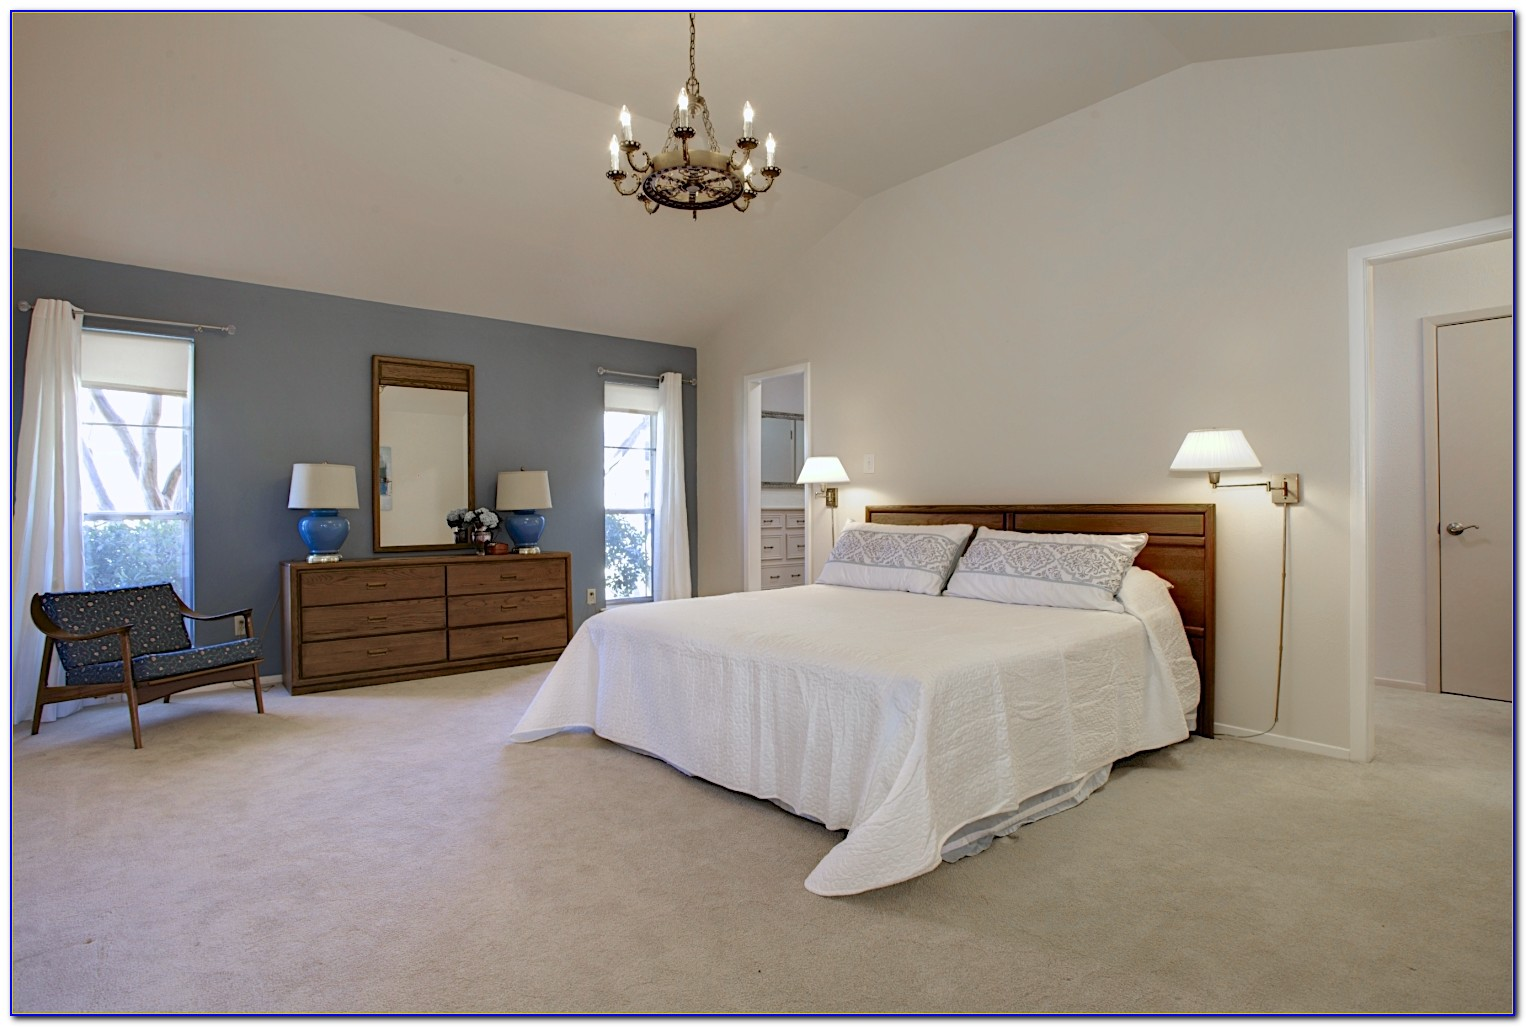 Light Fixture Ideas For Bedroom